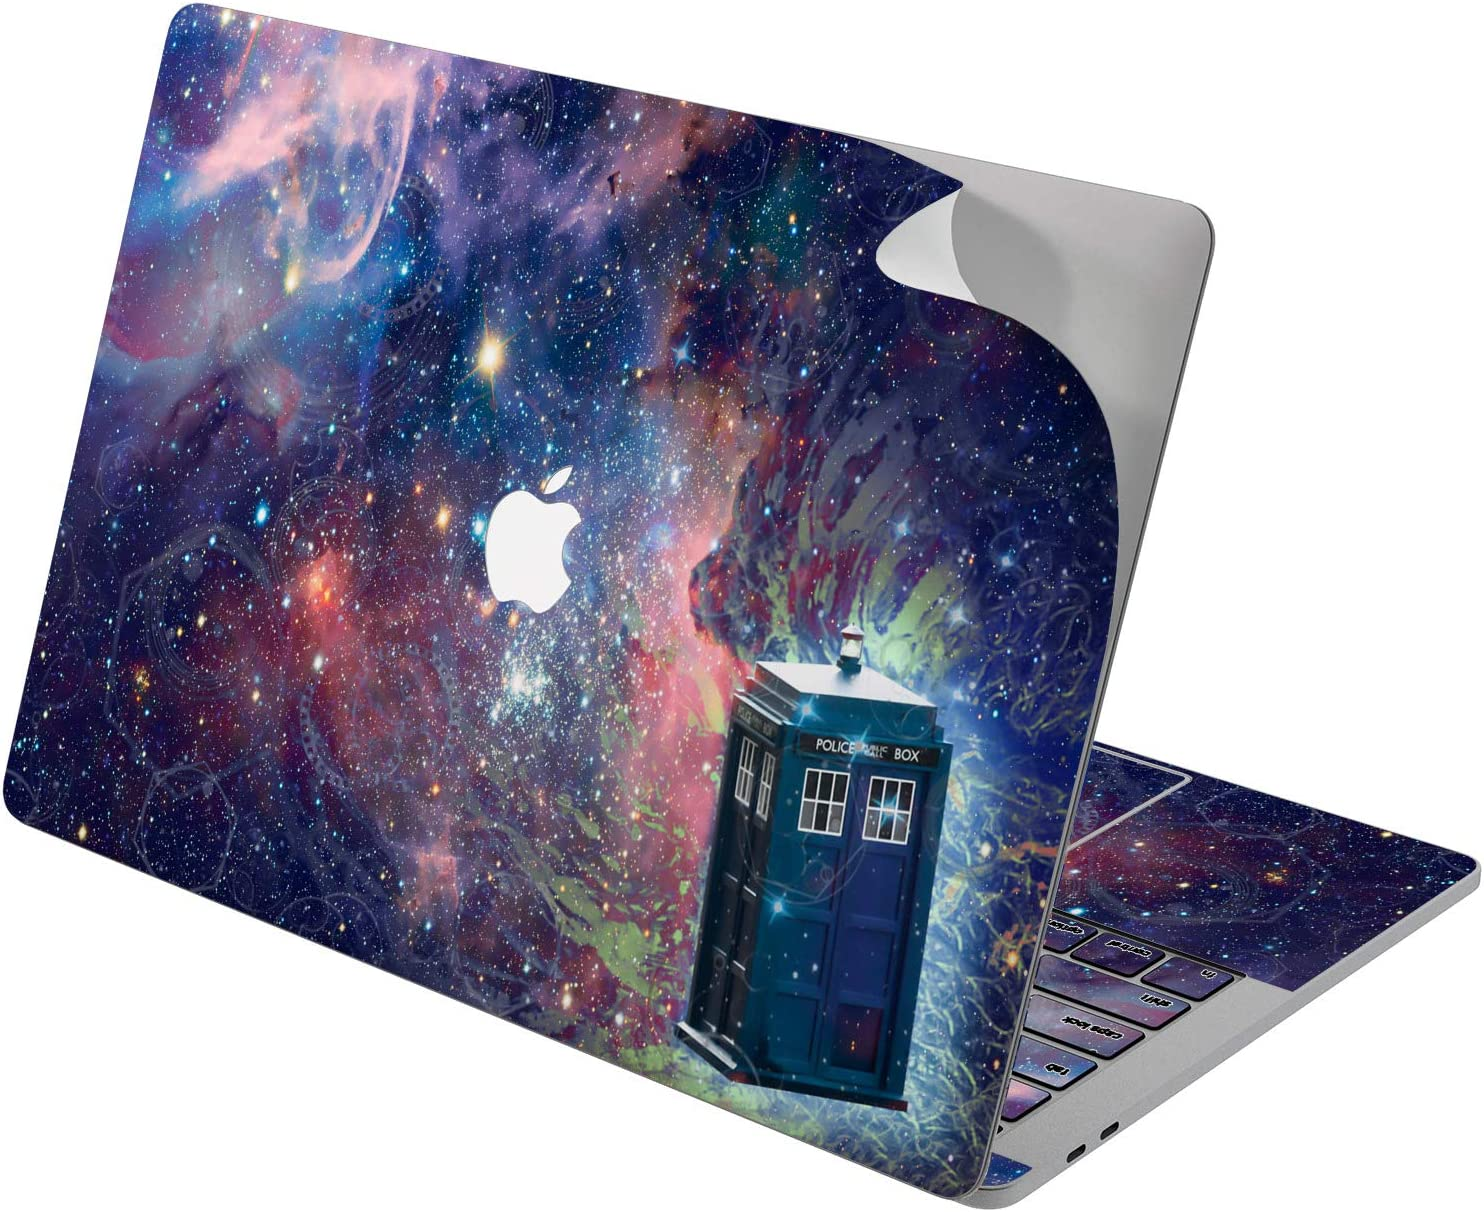 "Cavka Vinyl Decal Skin for Apple MacBook Pro 13"" 2019 15"" 2018 Air 13"" 2020 Retina 2015 Mac 11"" Mac 12"" Laptop Police Call Box Doctor Who Galaxy TV Show Sticker Design Protective Print Cover Movie"